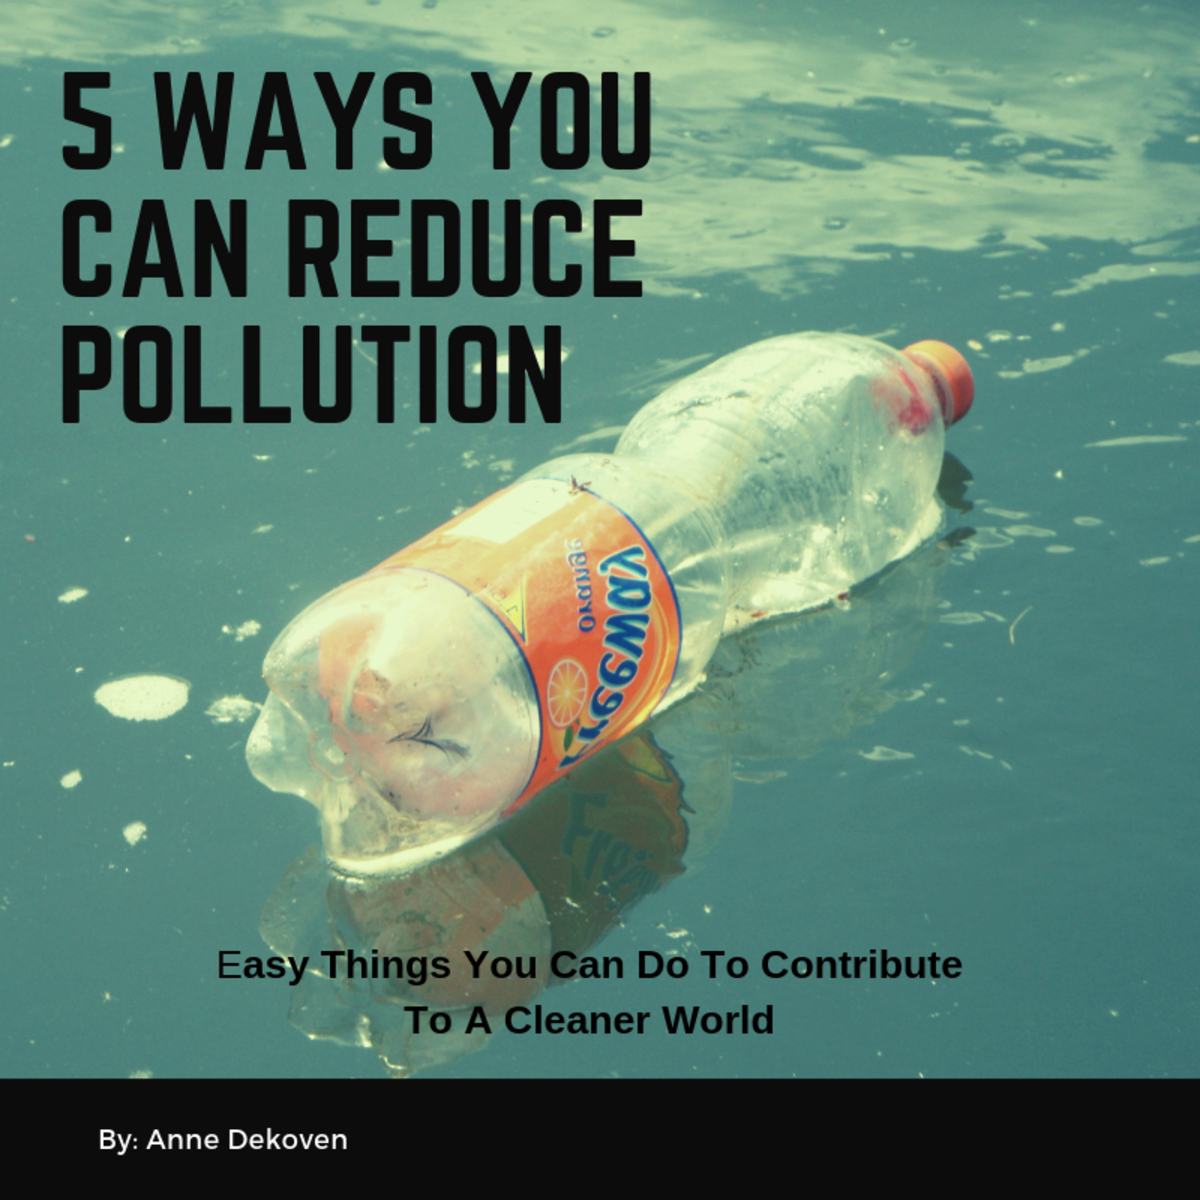 5 Easy Ways You Can Help Reduce Pollution